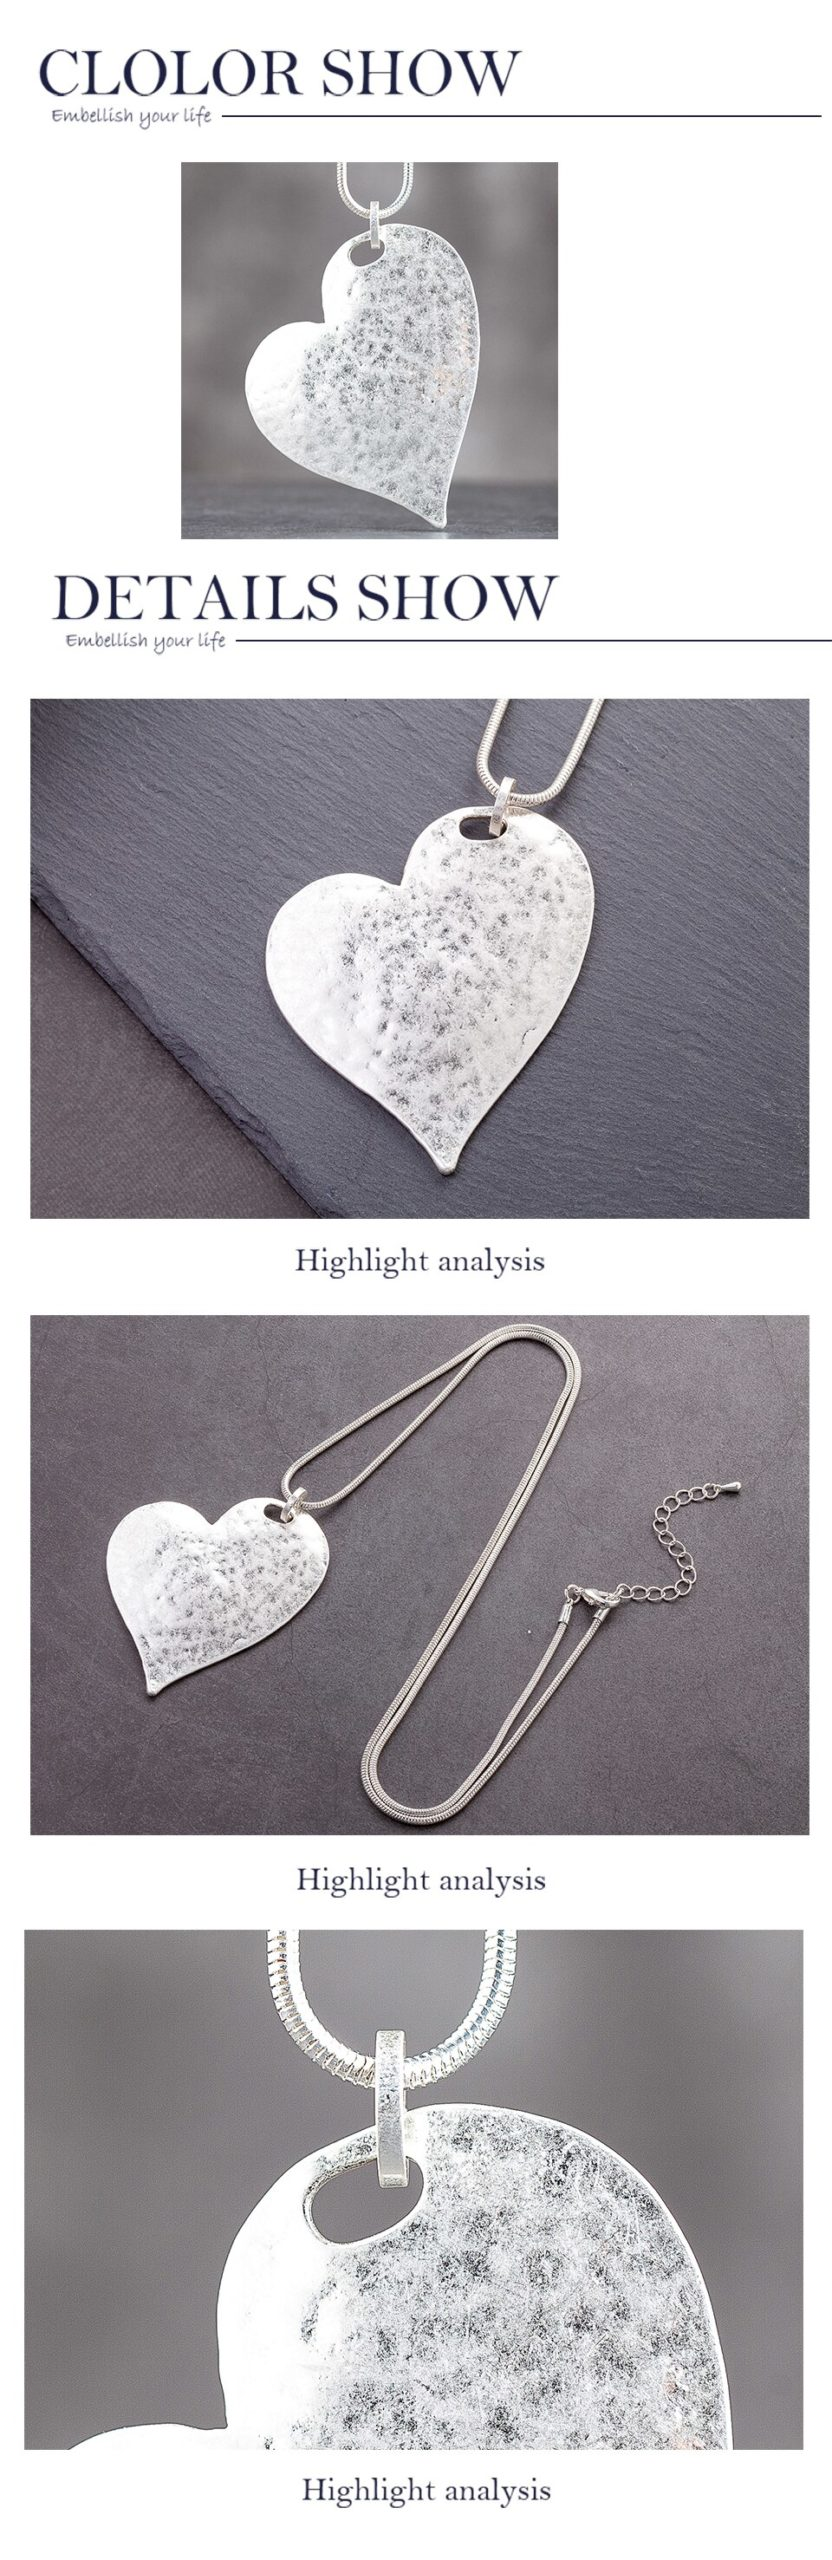 2020 Heart Suspension Accessories Bijouterie Female Pendant Jewelry on the Neck Decoration Gifts Large Necklace for Women Lovers